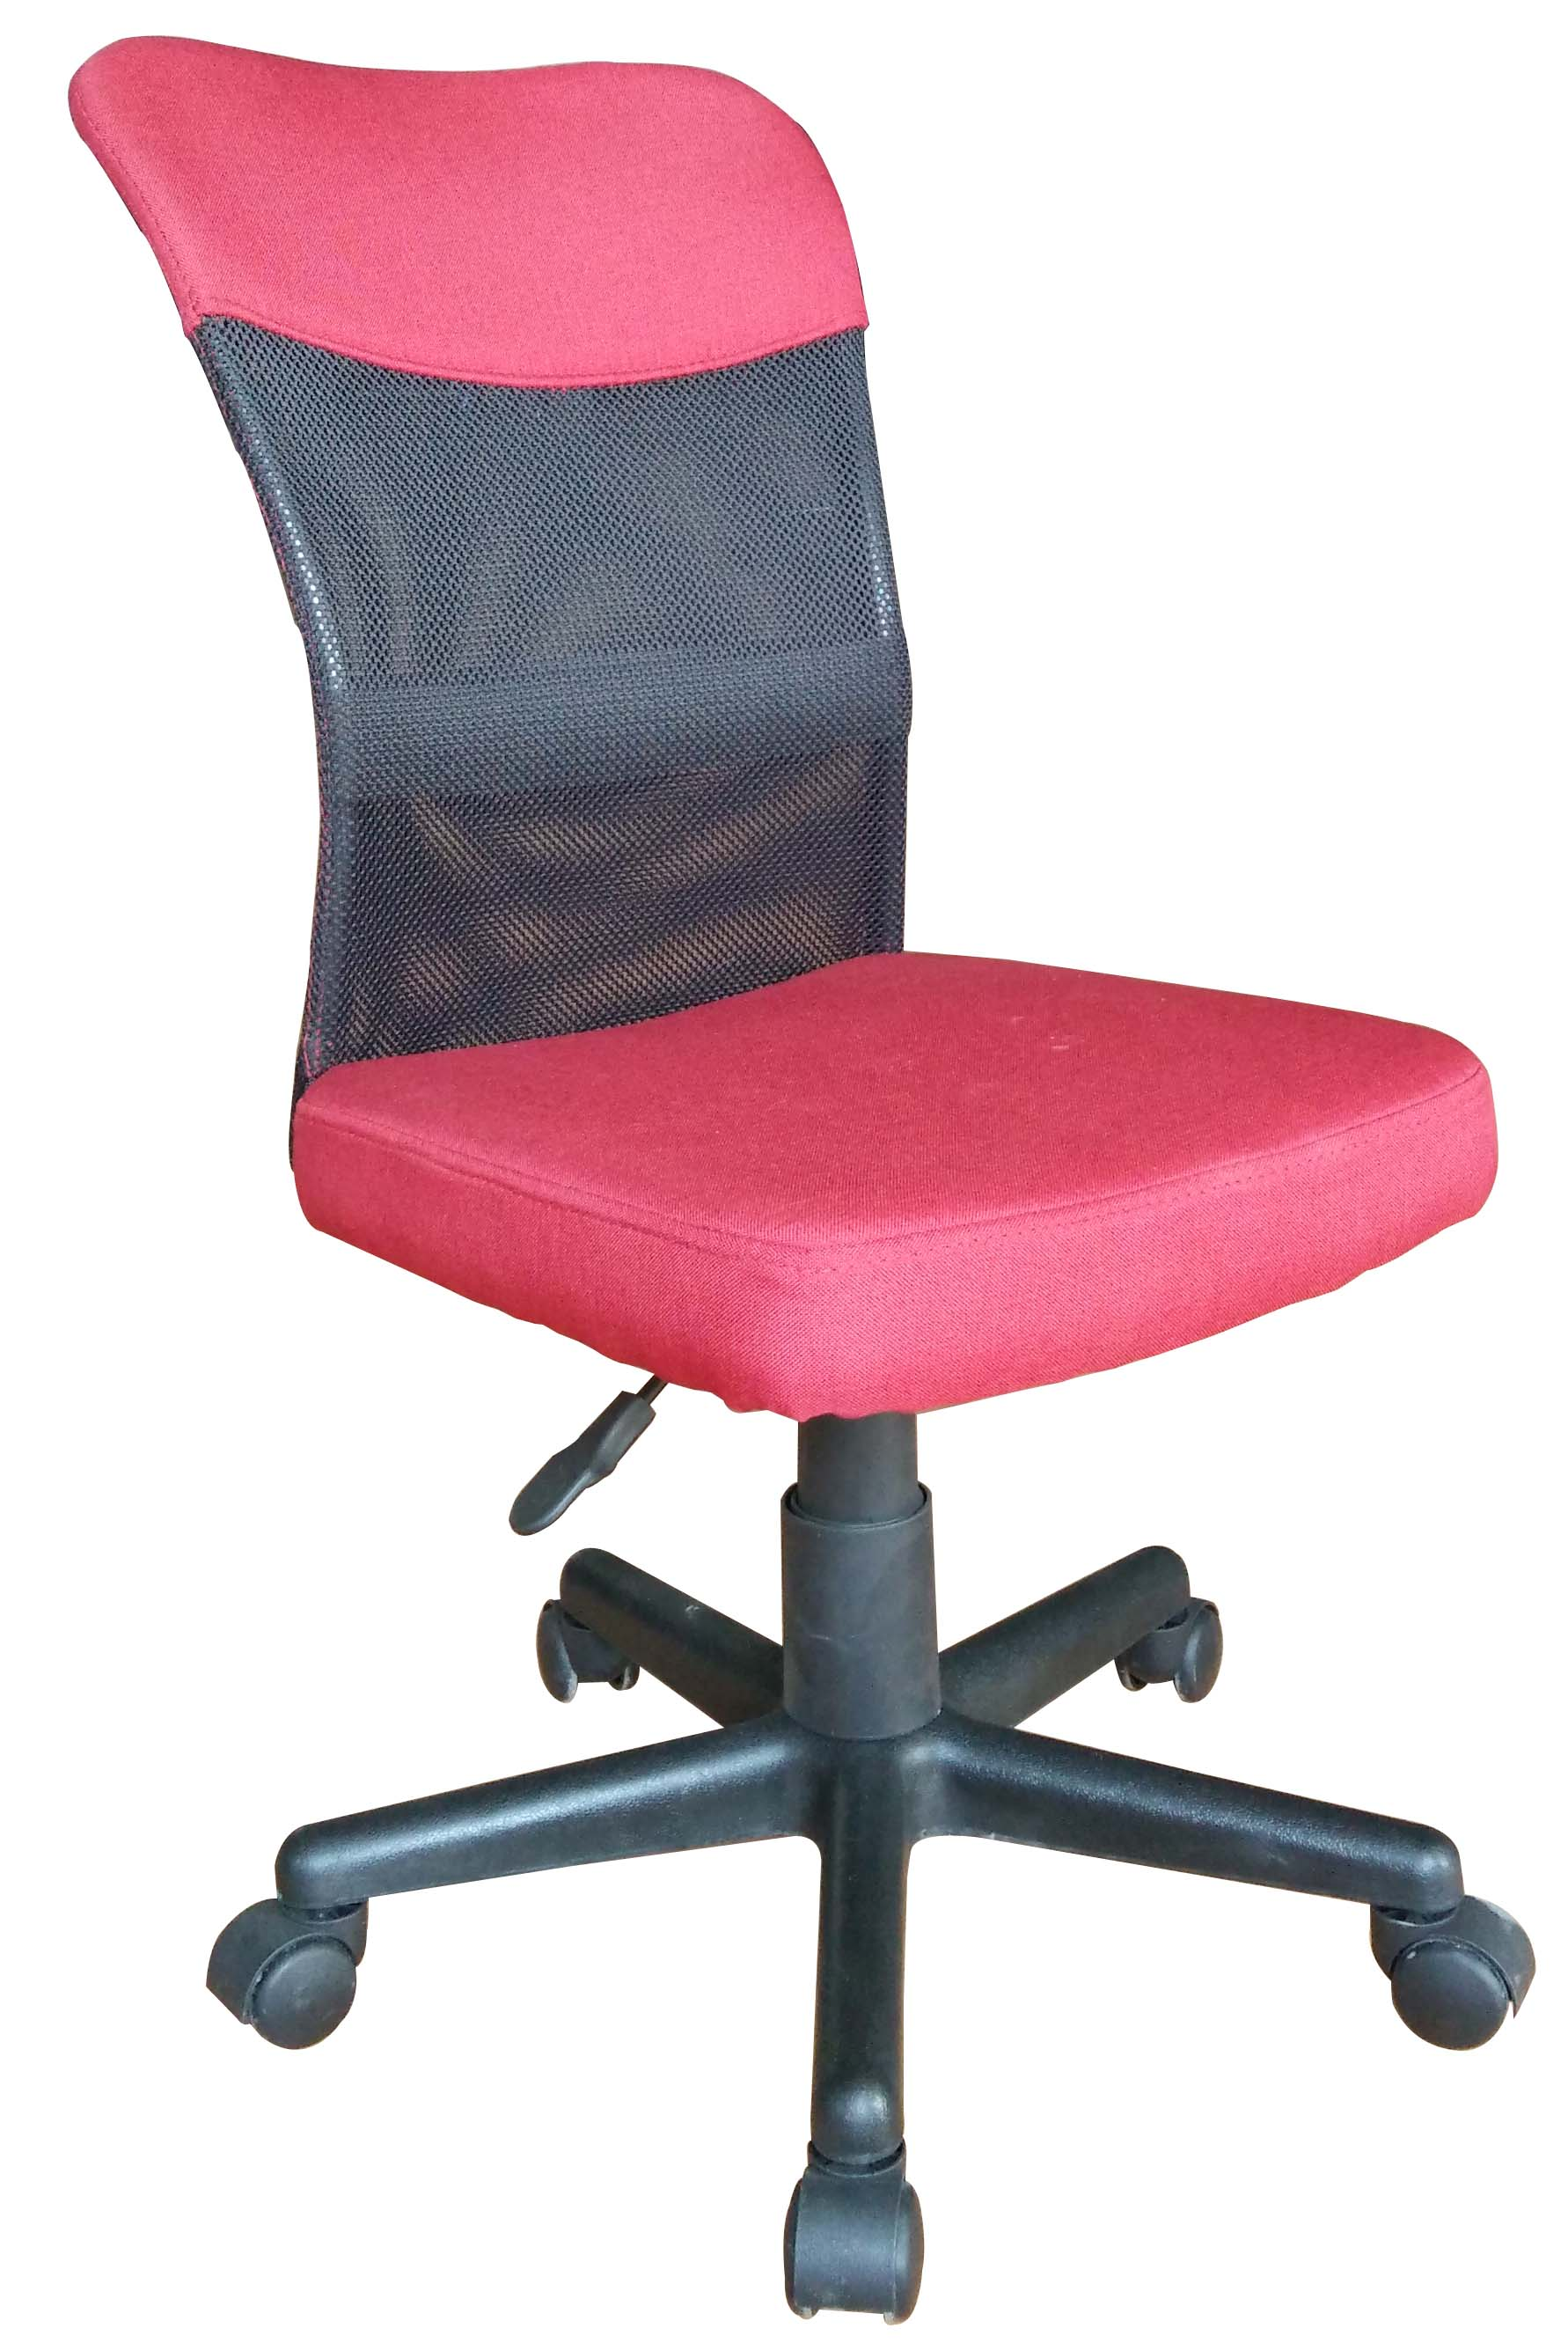 colorful armless kids office chair seat